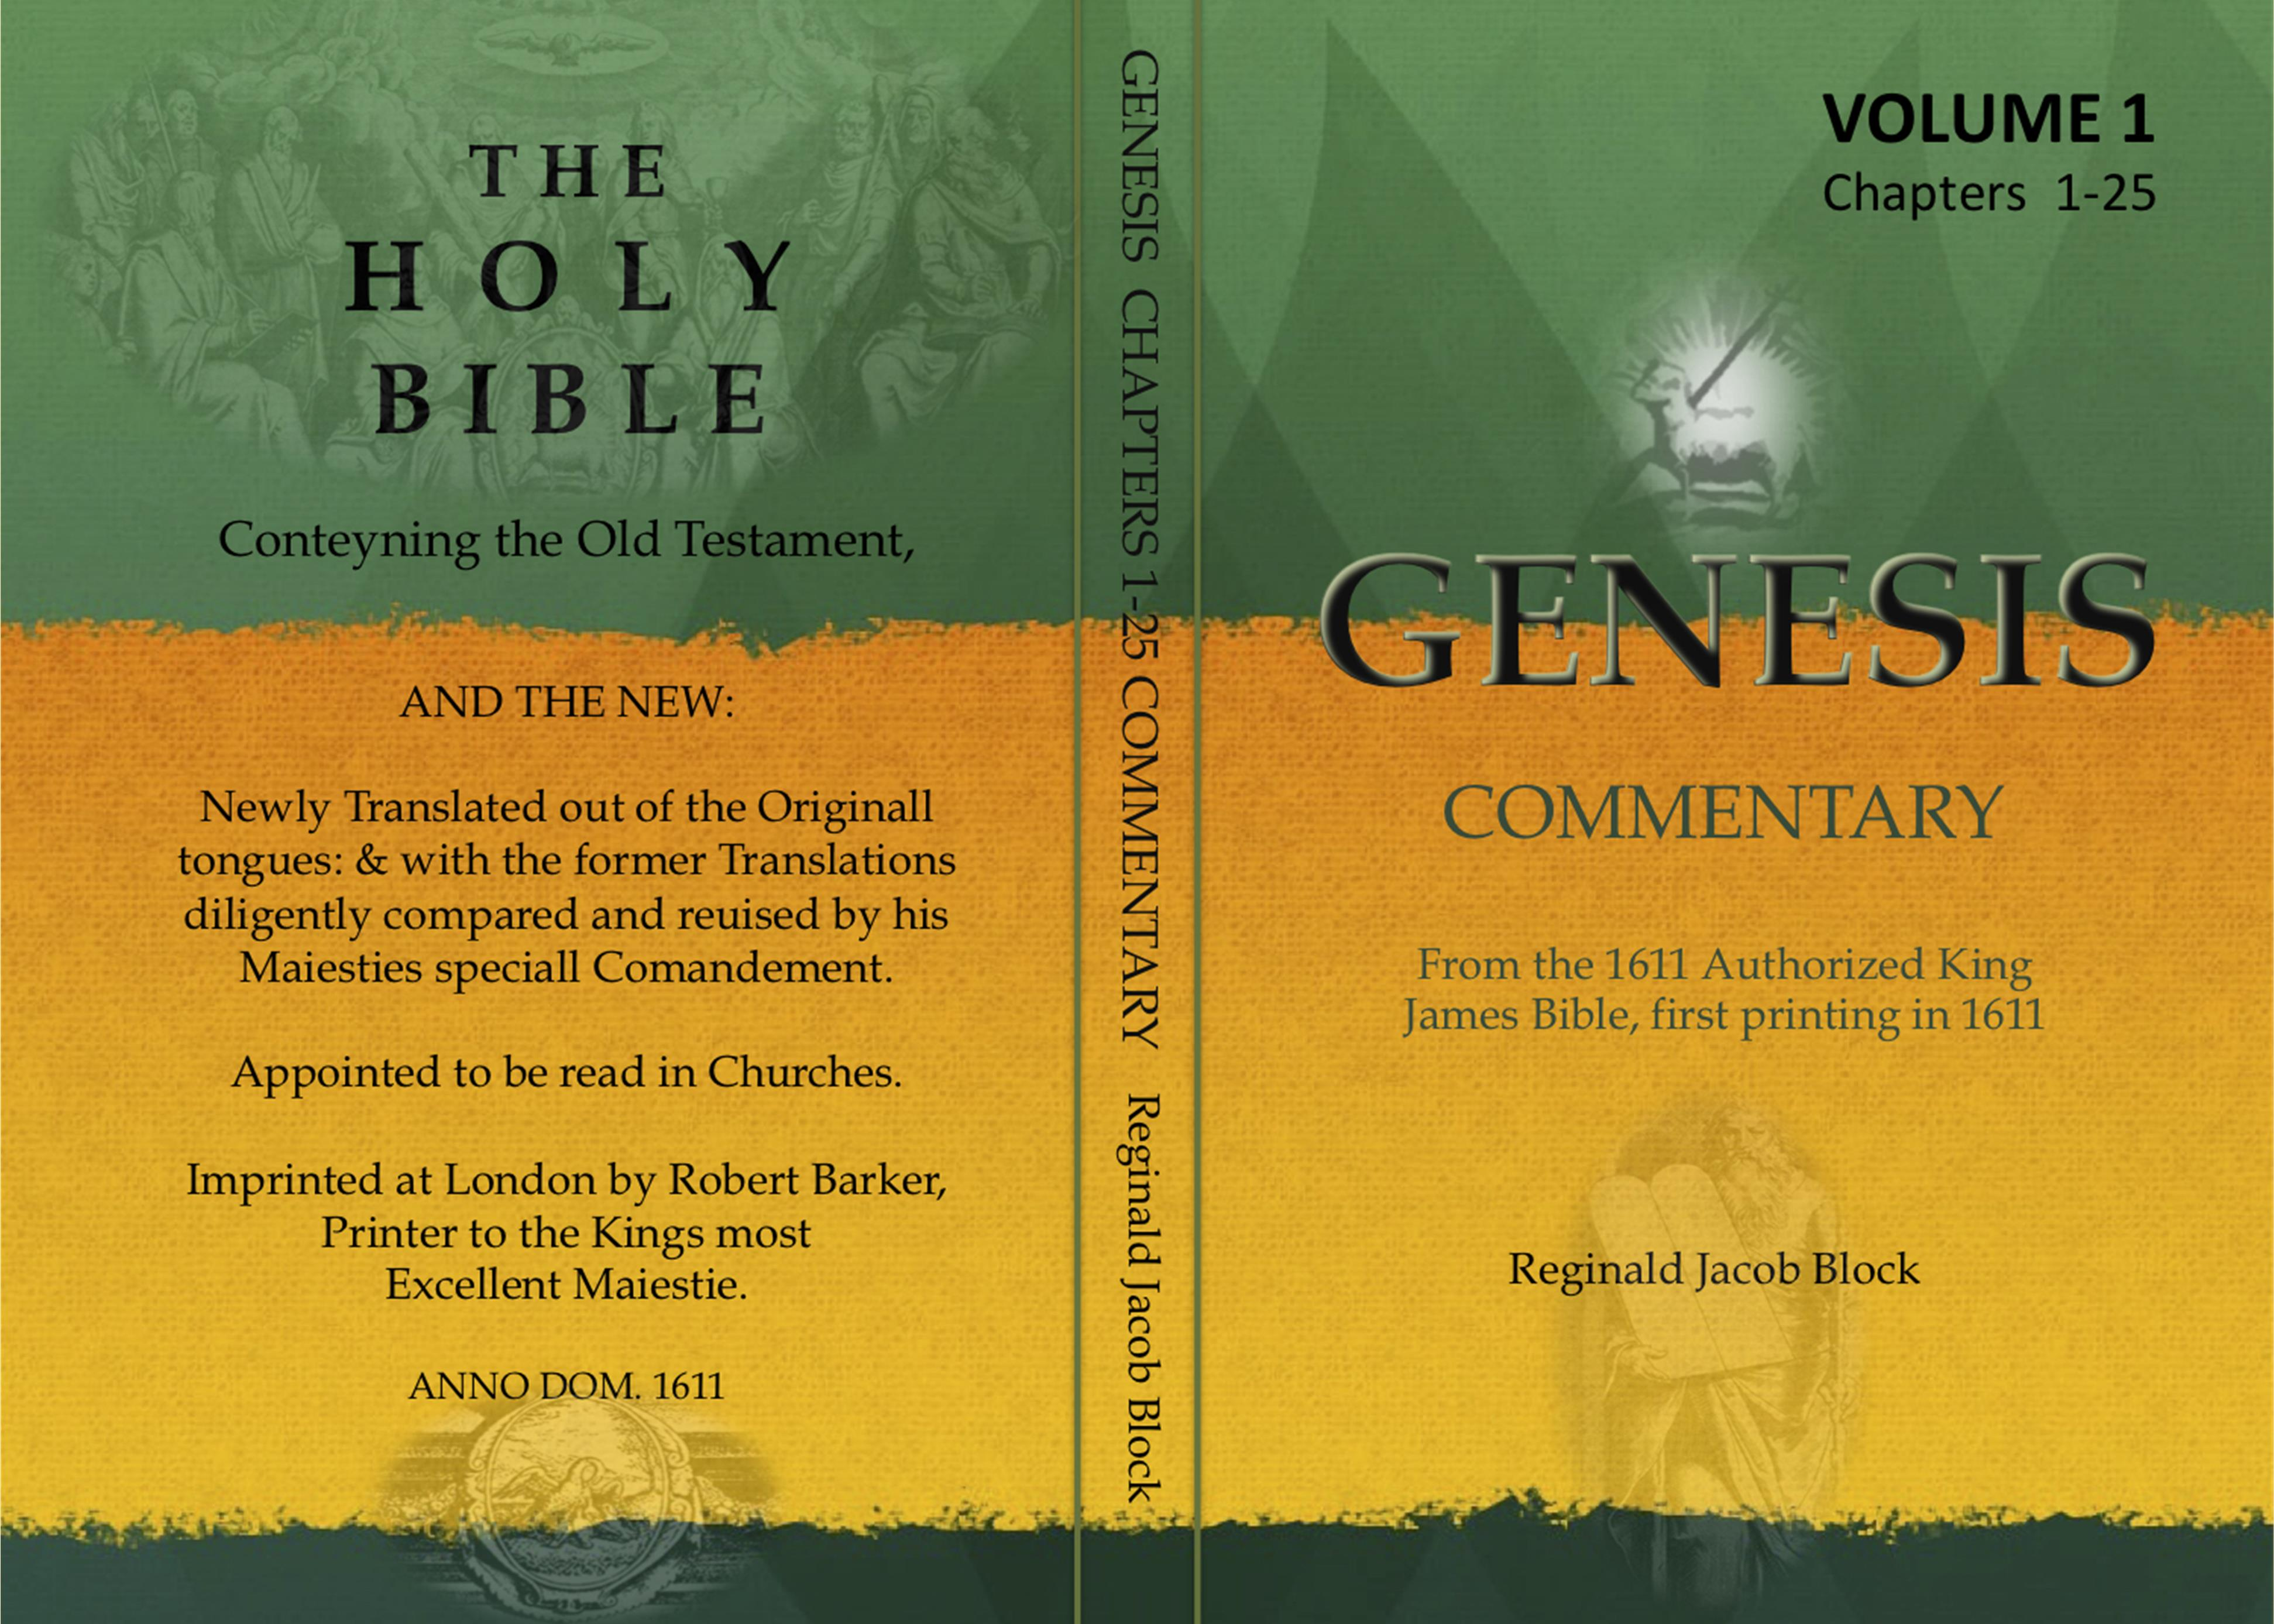 GENESIS COMMENTARY, CHAPTERS 1-25, VOLUME 1 cover image